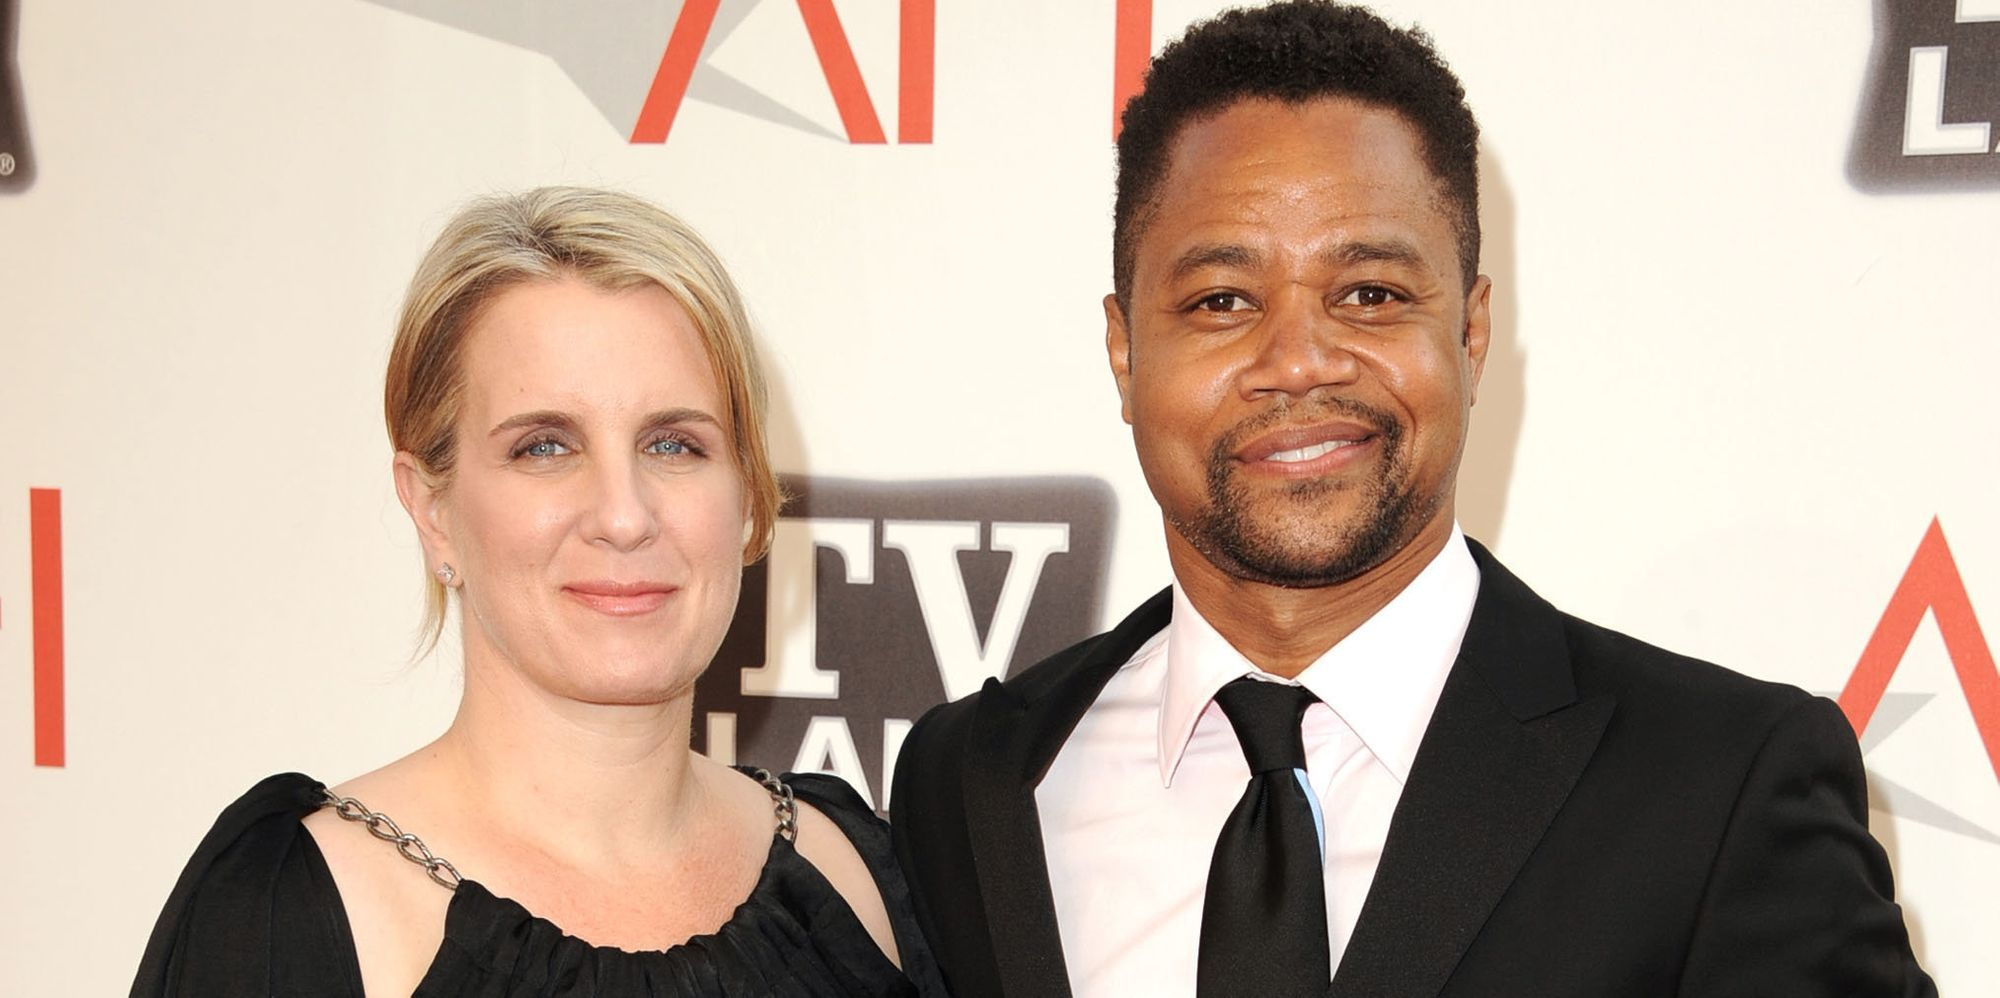 Cuba Gooding Jr. Files for Divorce From Wife Of 20 Years Sara Kapfer - Huffington Post